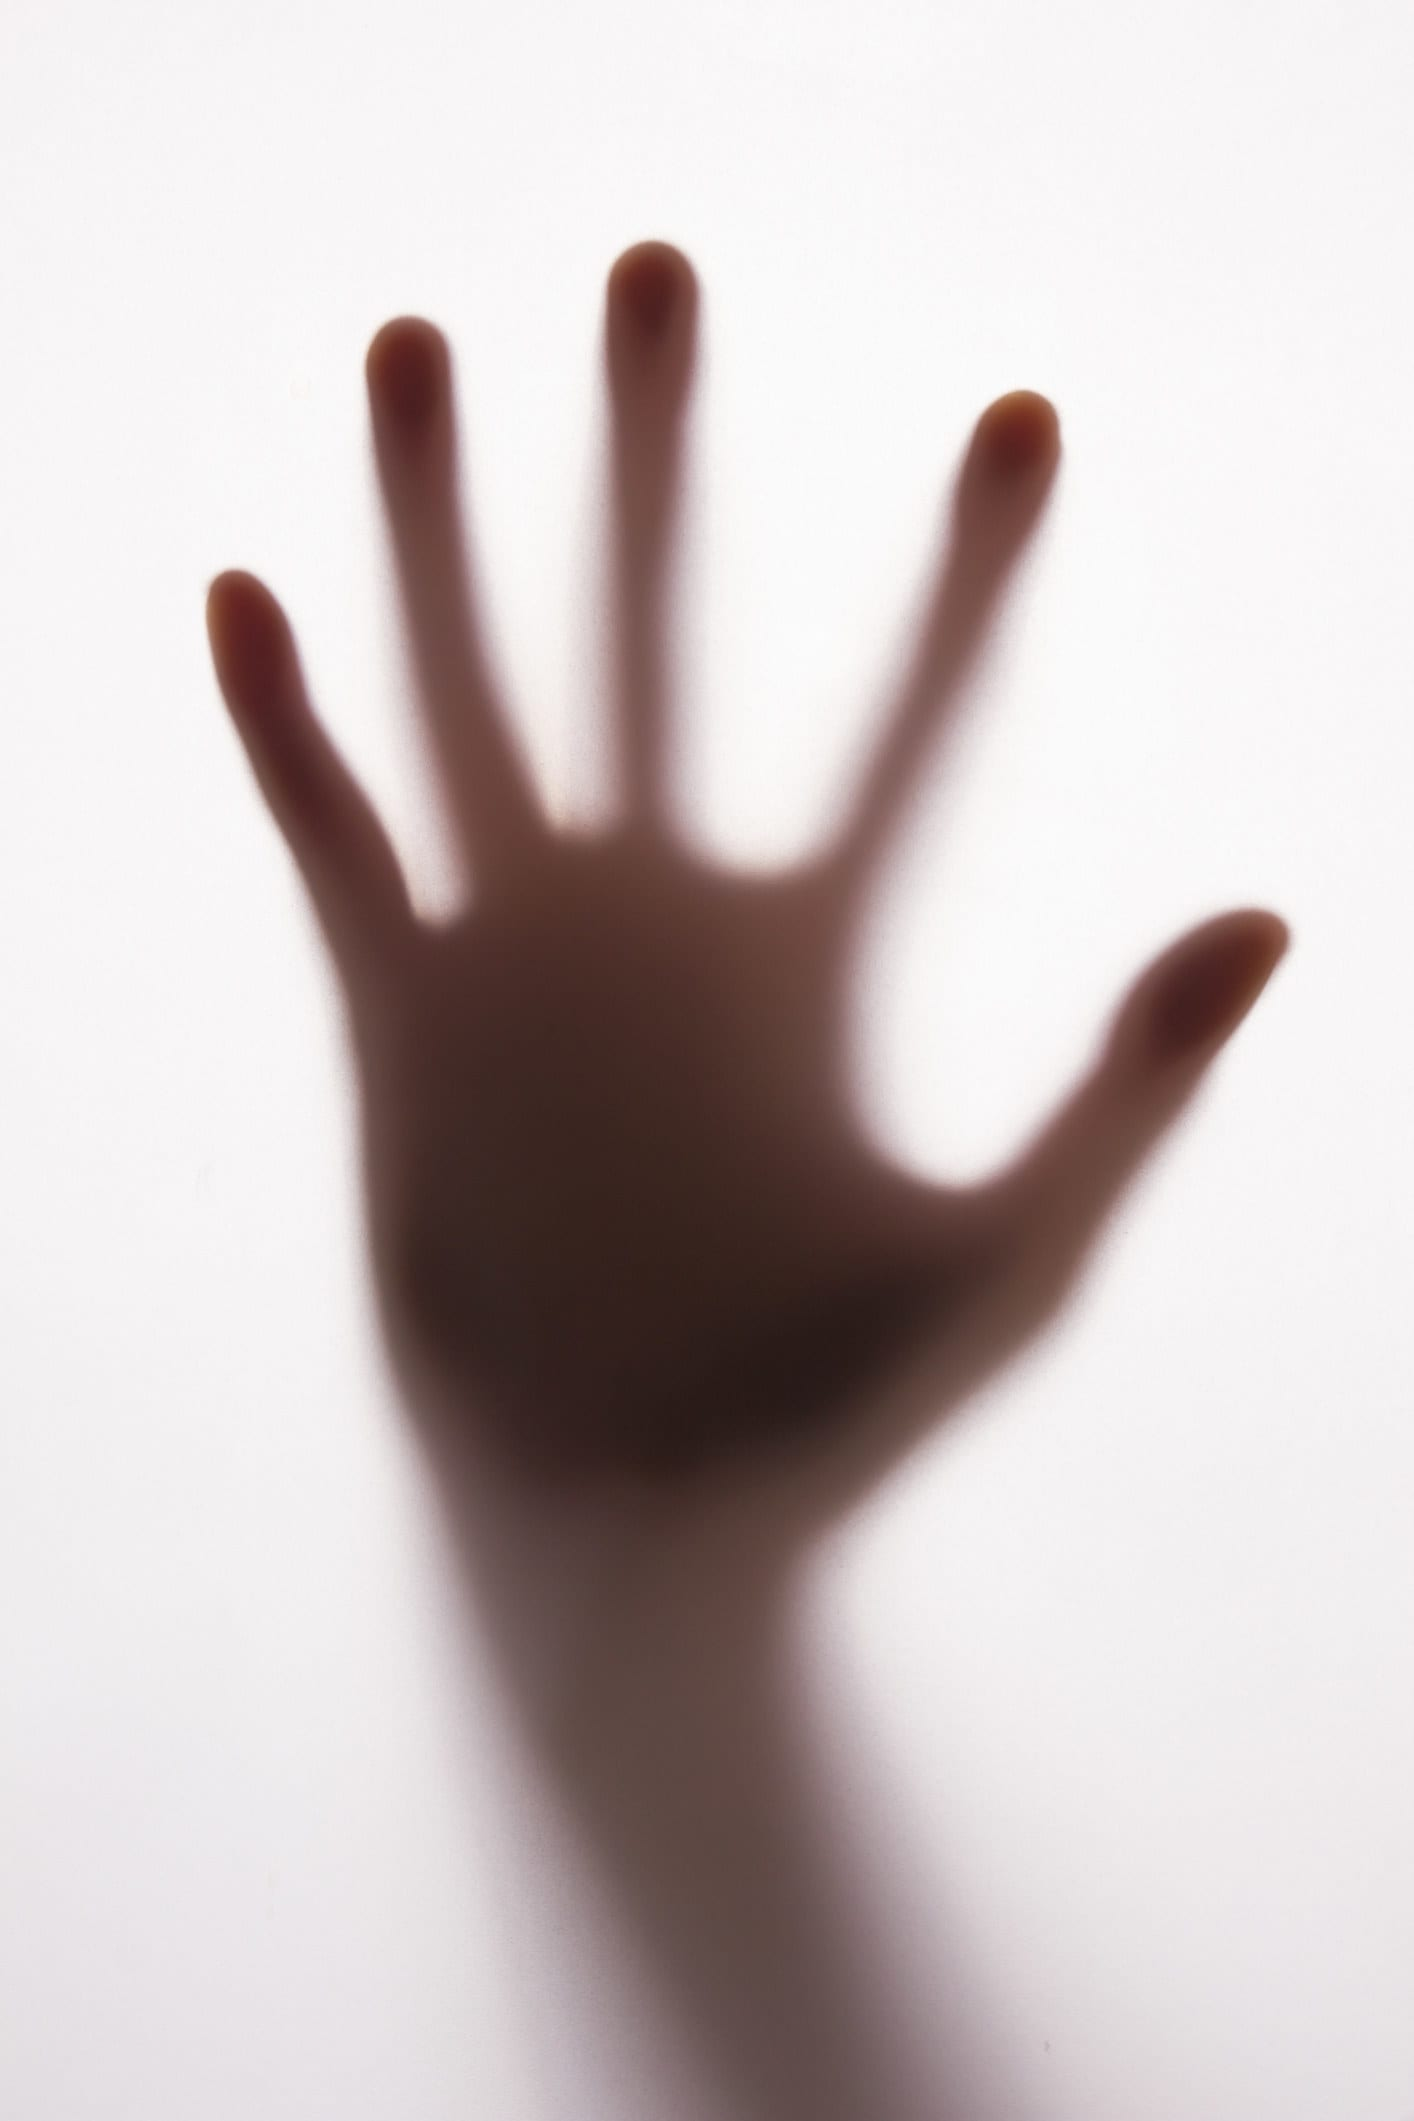 The silhouette of a hand